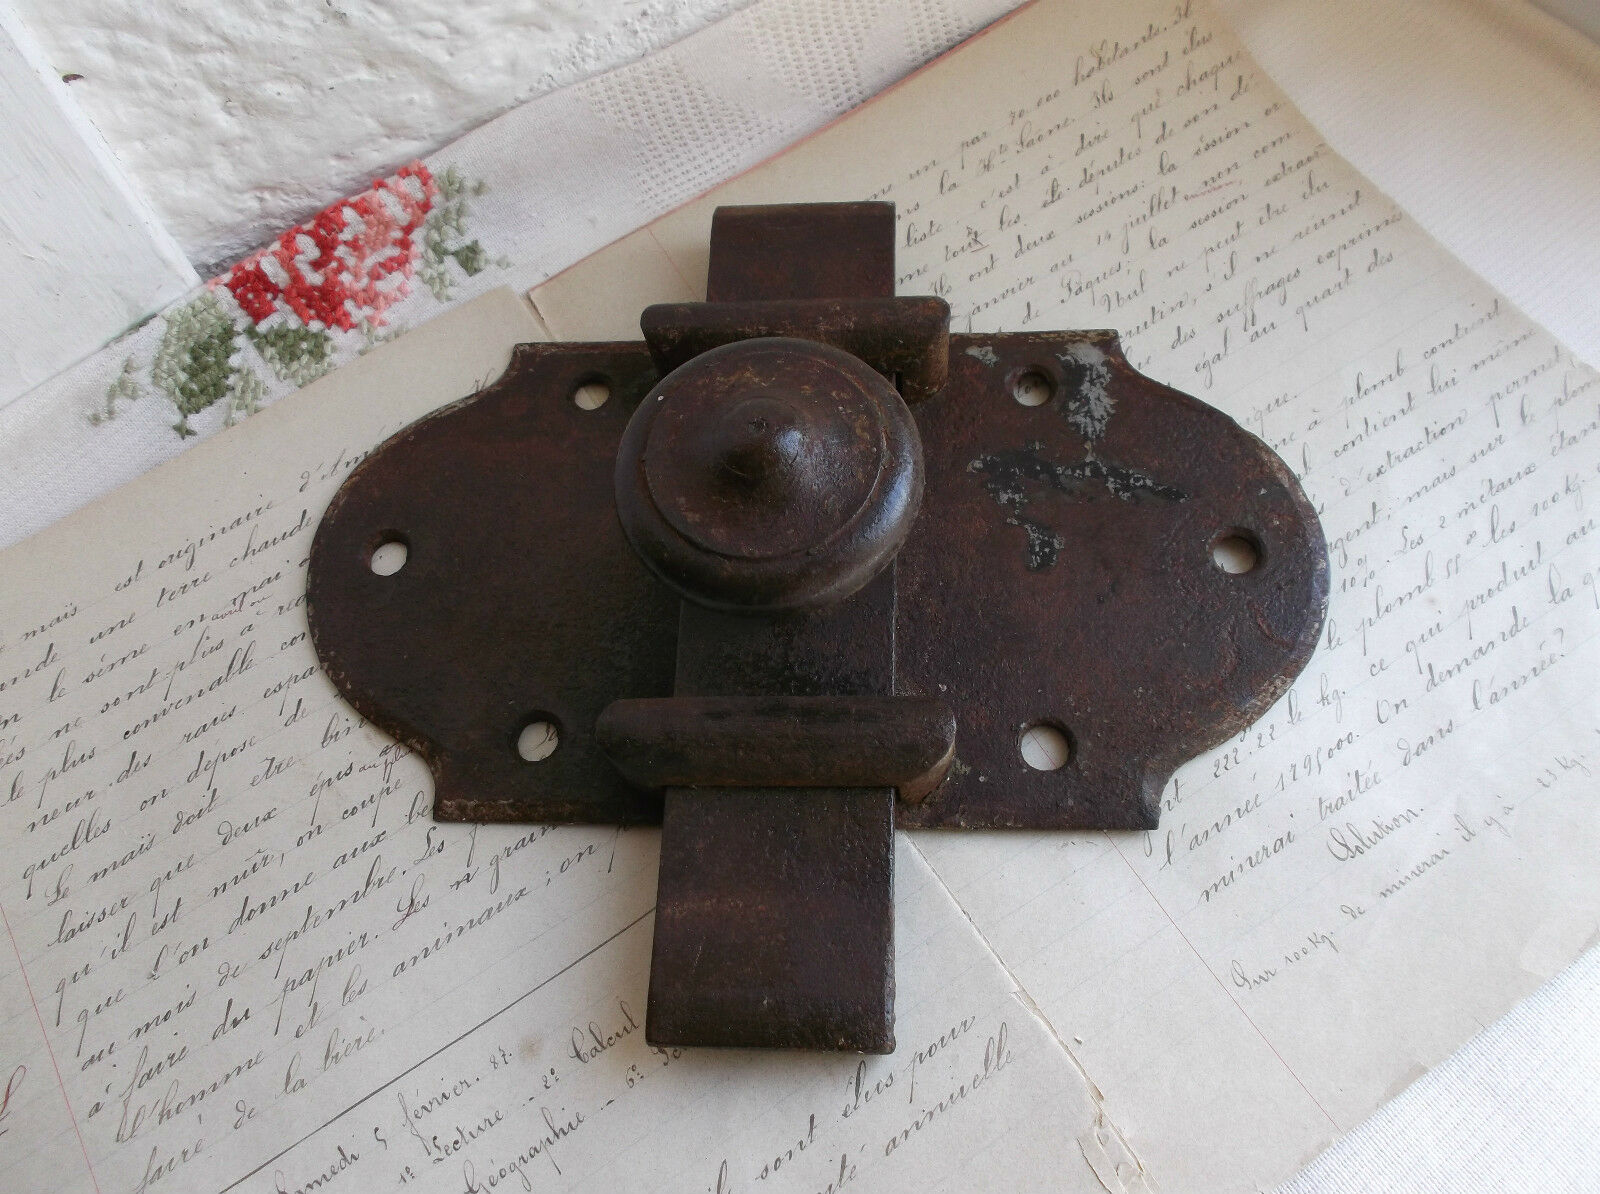 French 19th century antique slide latch door lock iron country farmhouse